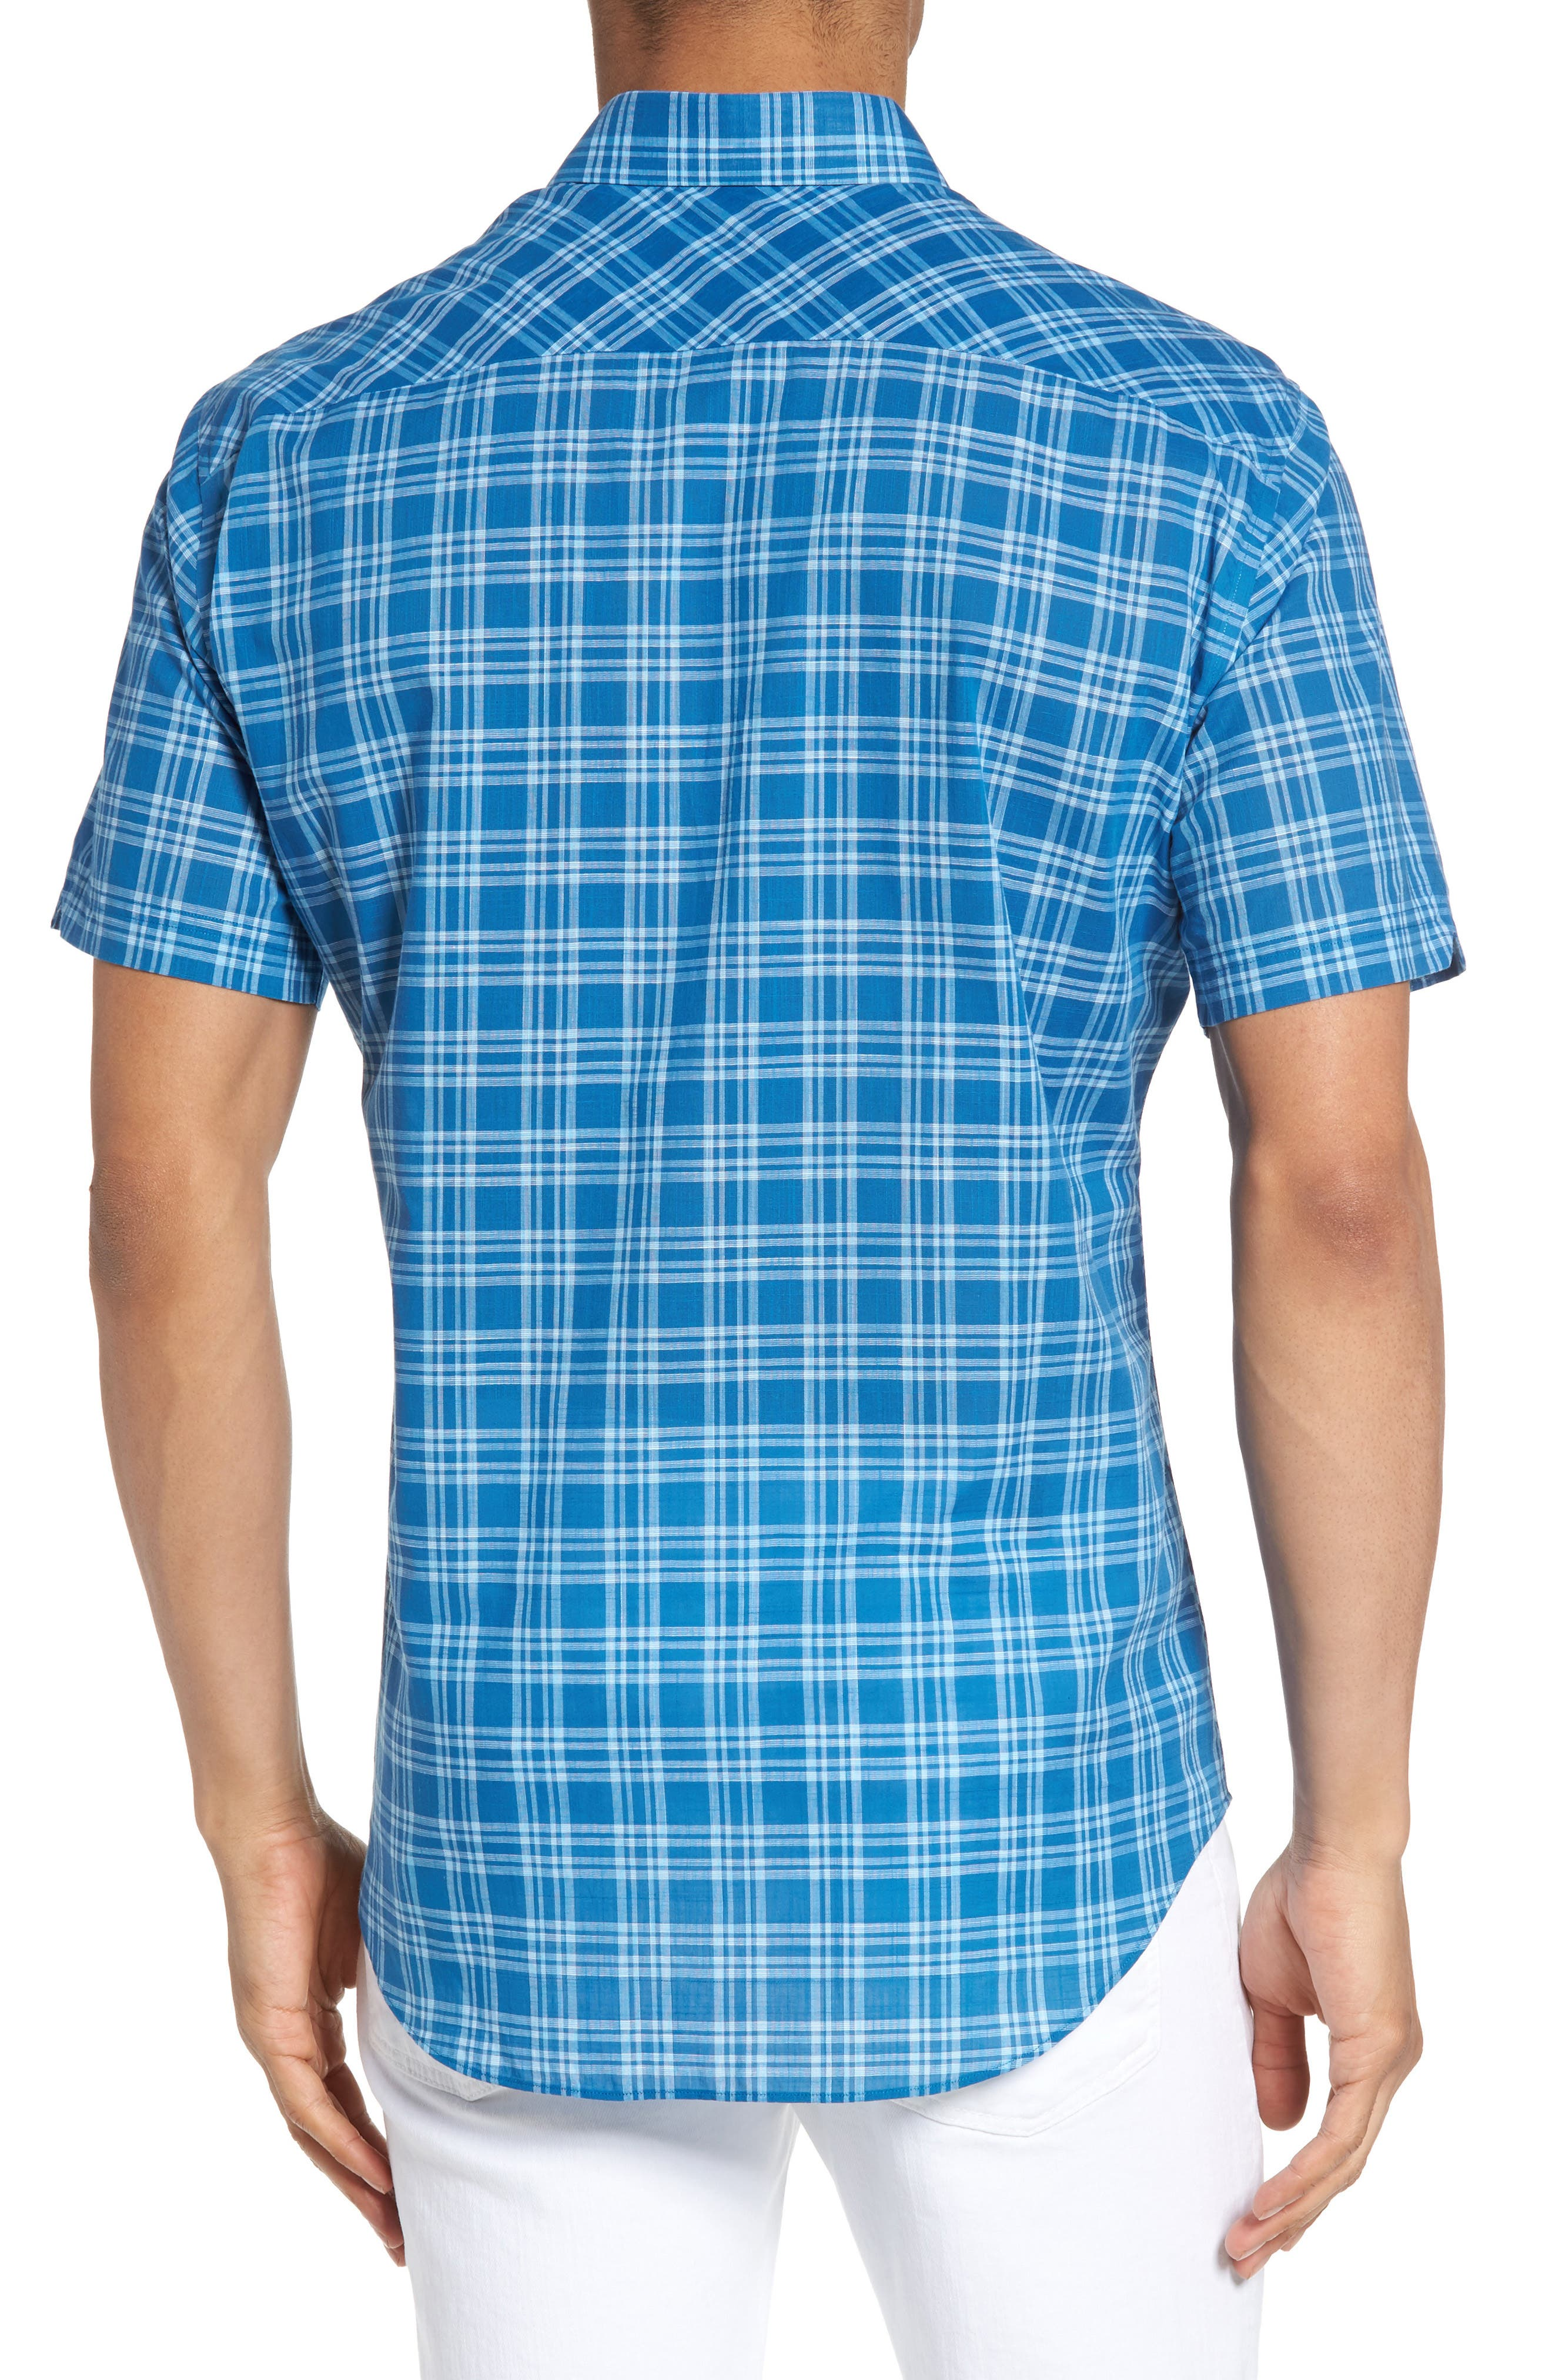 Kirchner Plaid Sport Shirt,                             Alternate thumbnail 2, color,                             460